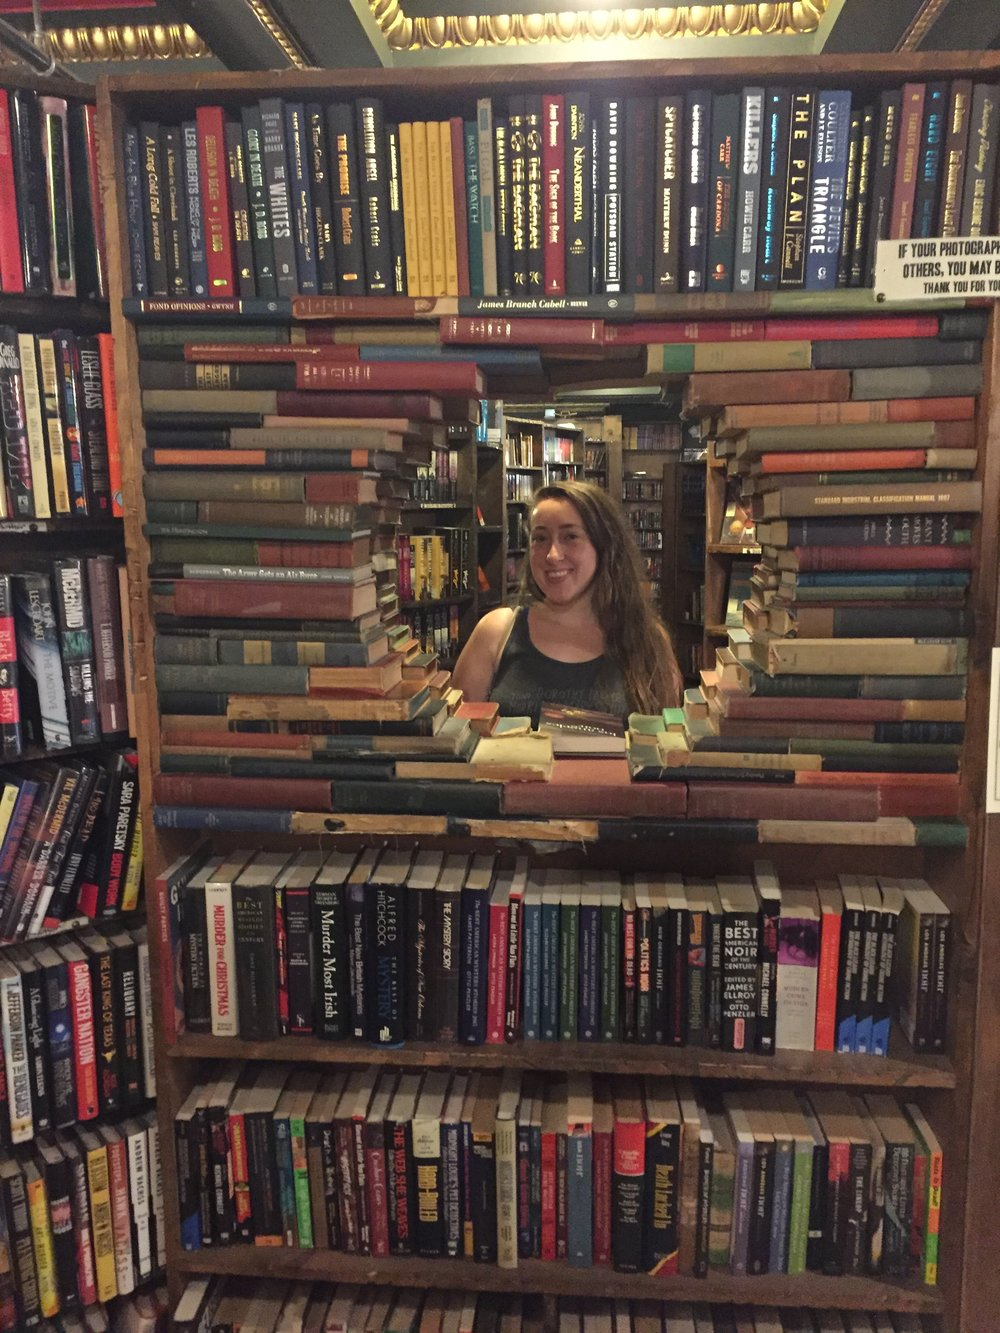 [image description: A sculpture built into a bookshelf. In this one, it's old books laid on their sides and arranged in a way to make a circular window through the bookshelf. The photo is of me as seen through the window of books. I'm smiling at the photographer.]